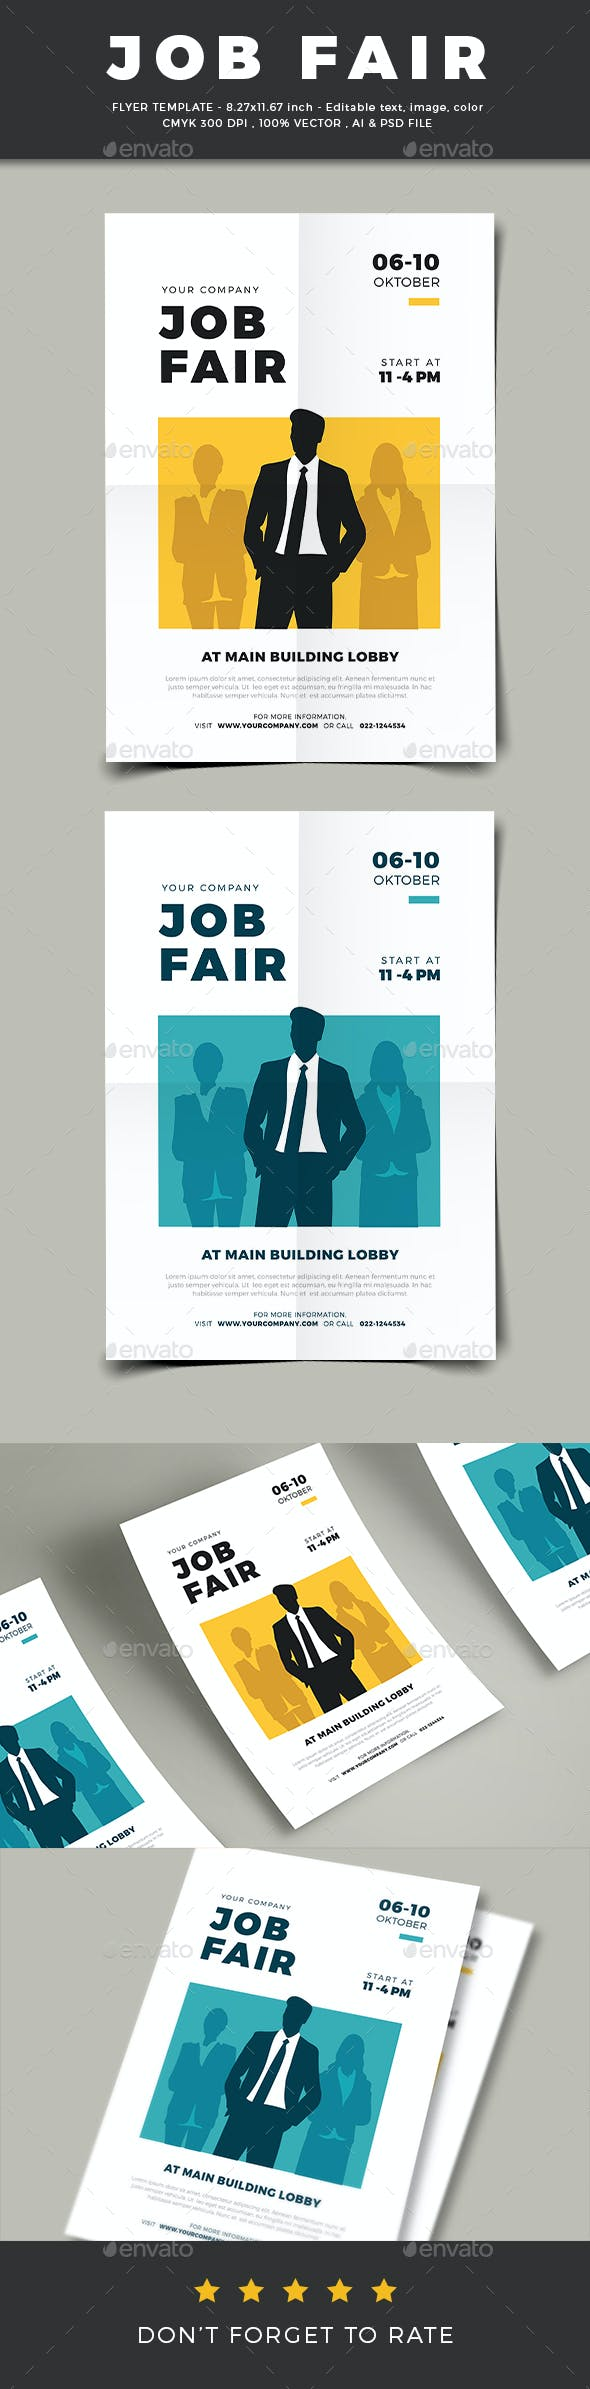 job fair flyer template by vector vactory graphicriver